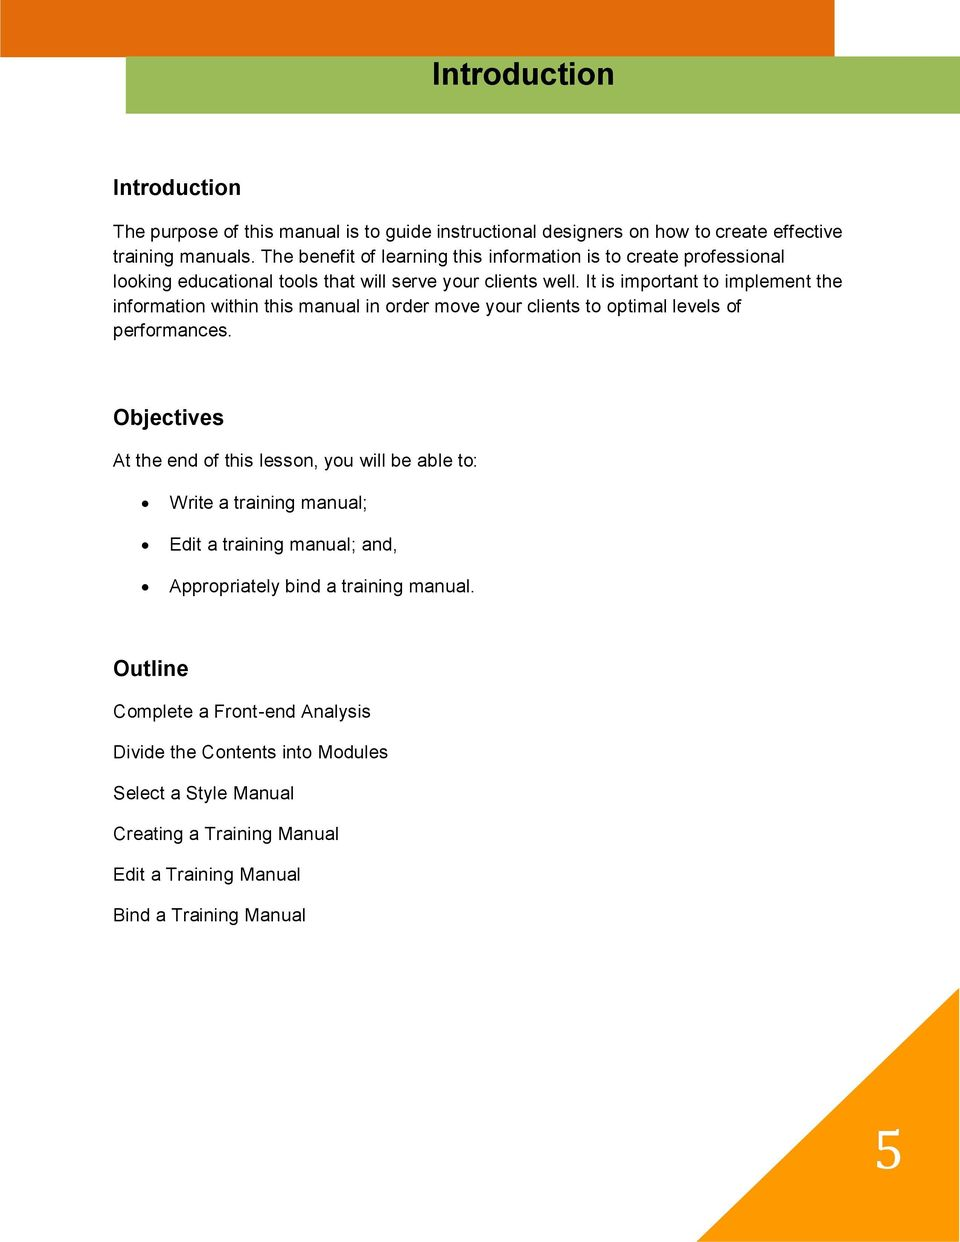 how to create effective training manuals mary l lanigan ph d pdf